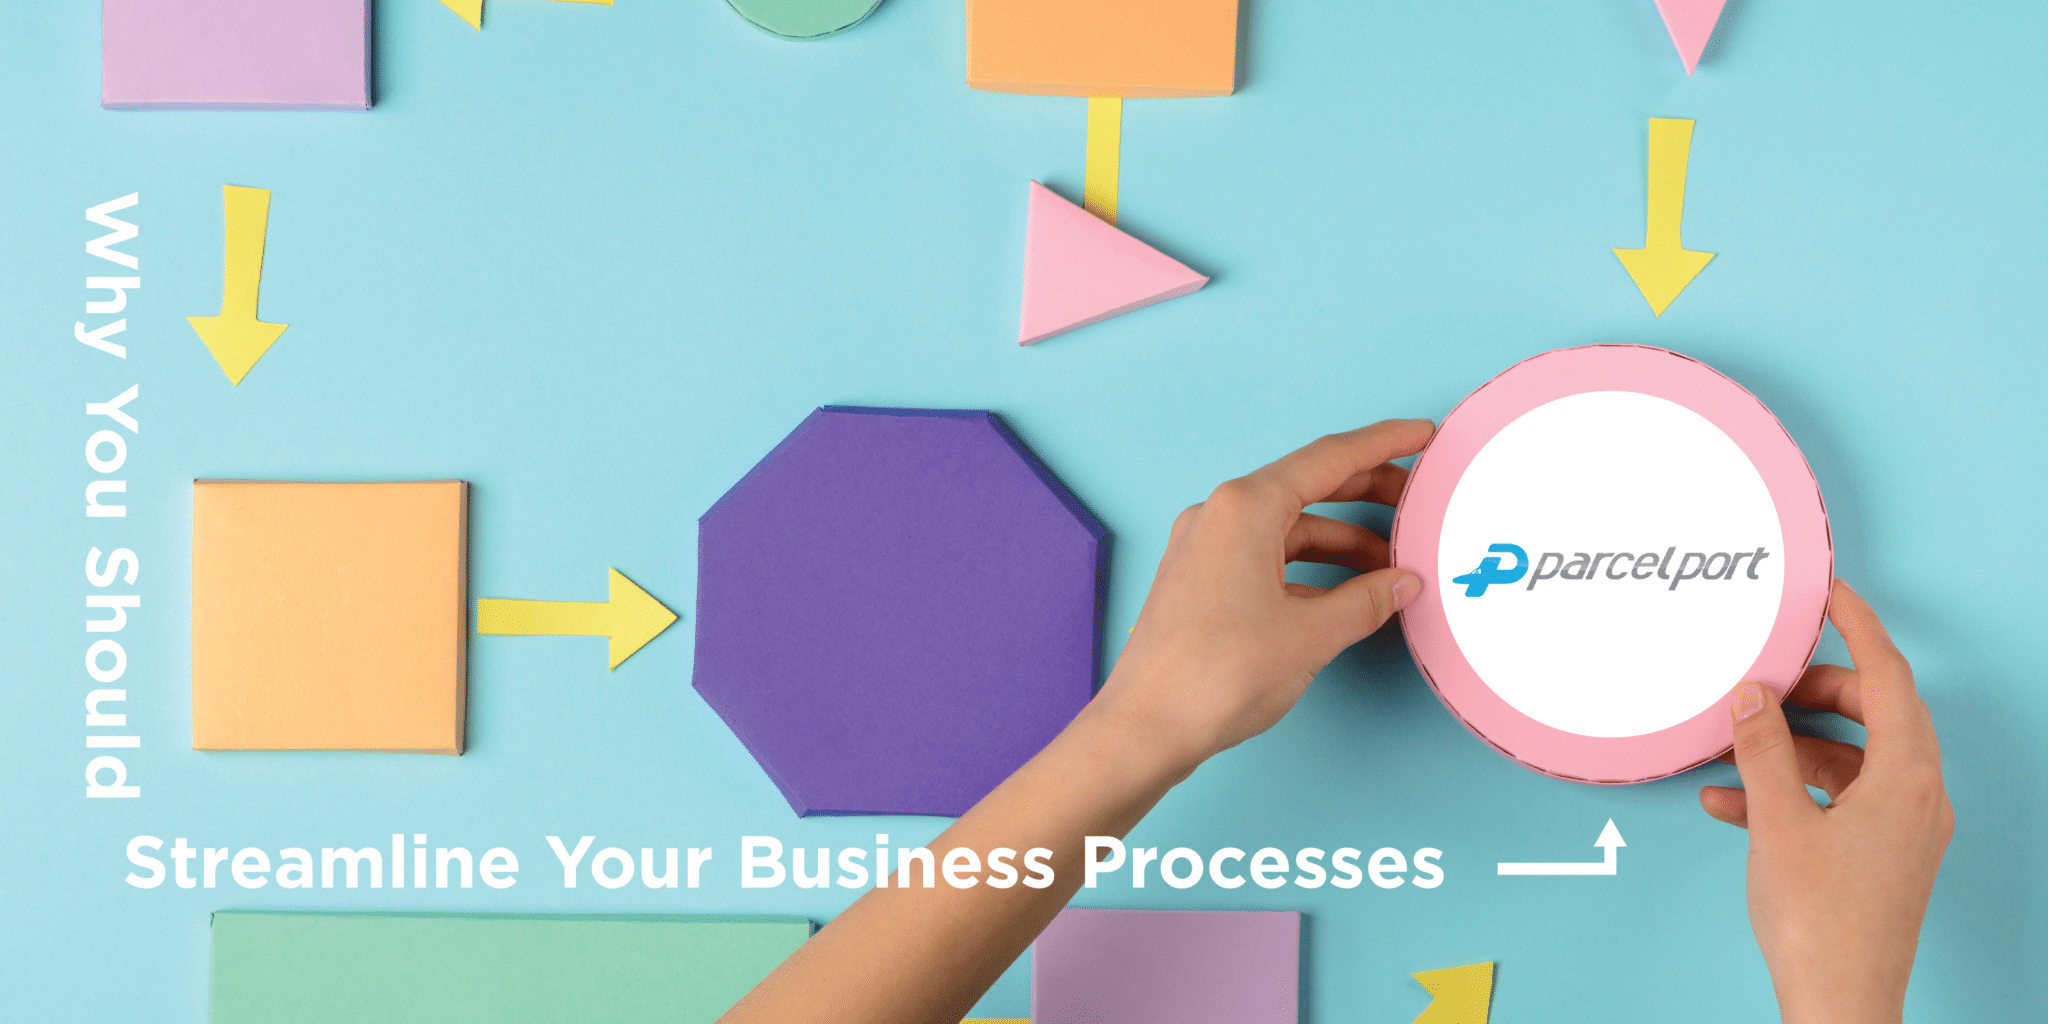 Why You Should Streamline Your Business Processes